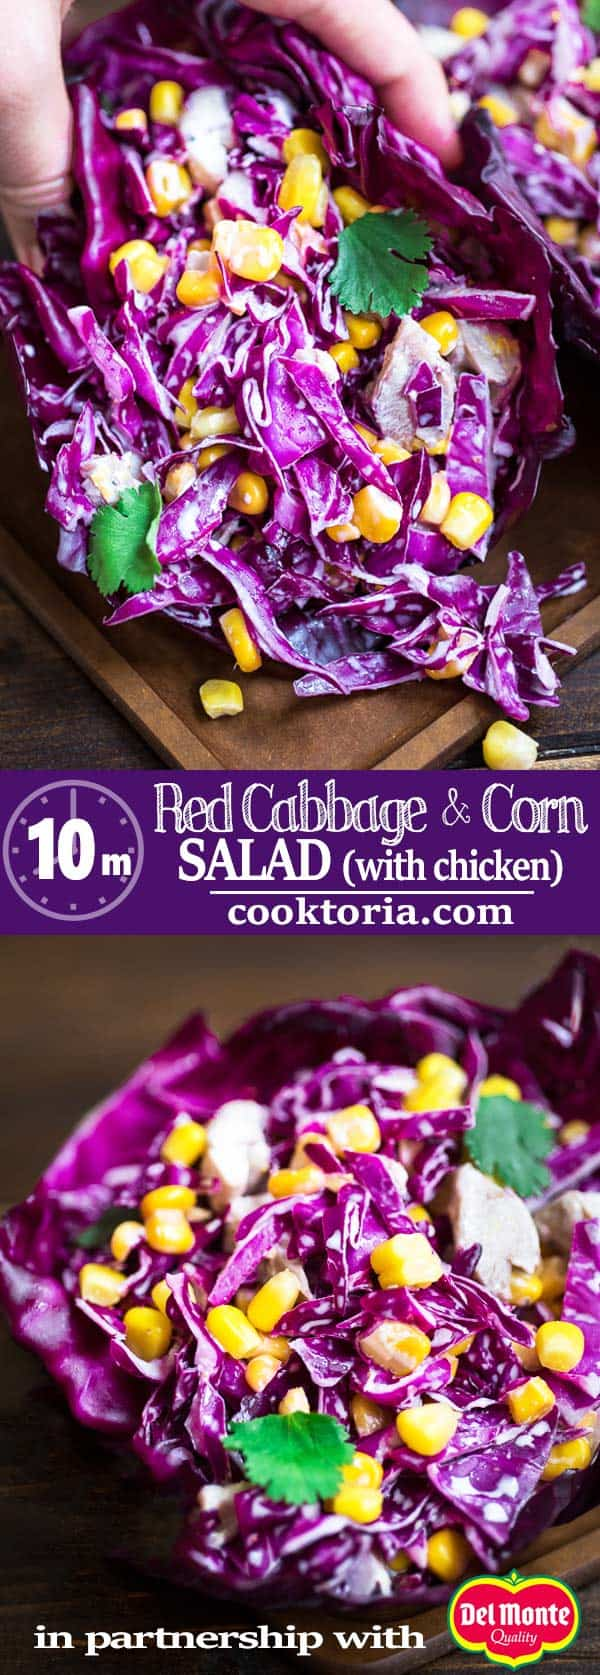 Refreshing and bright, this Red Cabbage and Corn Salad makes a perfect lunch or side dish. It comes together in minutes and is full of flavor! Refreshing and bright, this Red Cabbage and Corn Salad makes a perfect lunch or side dish. It comes together in minutes and is full of flavor! ❤ COOKTORIA.COM #cabbage #salad #chicken #lunch